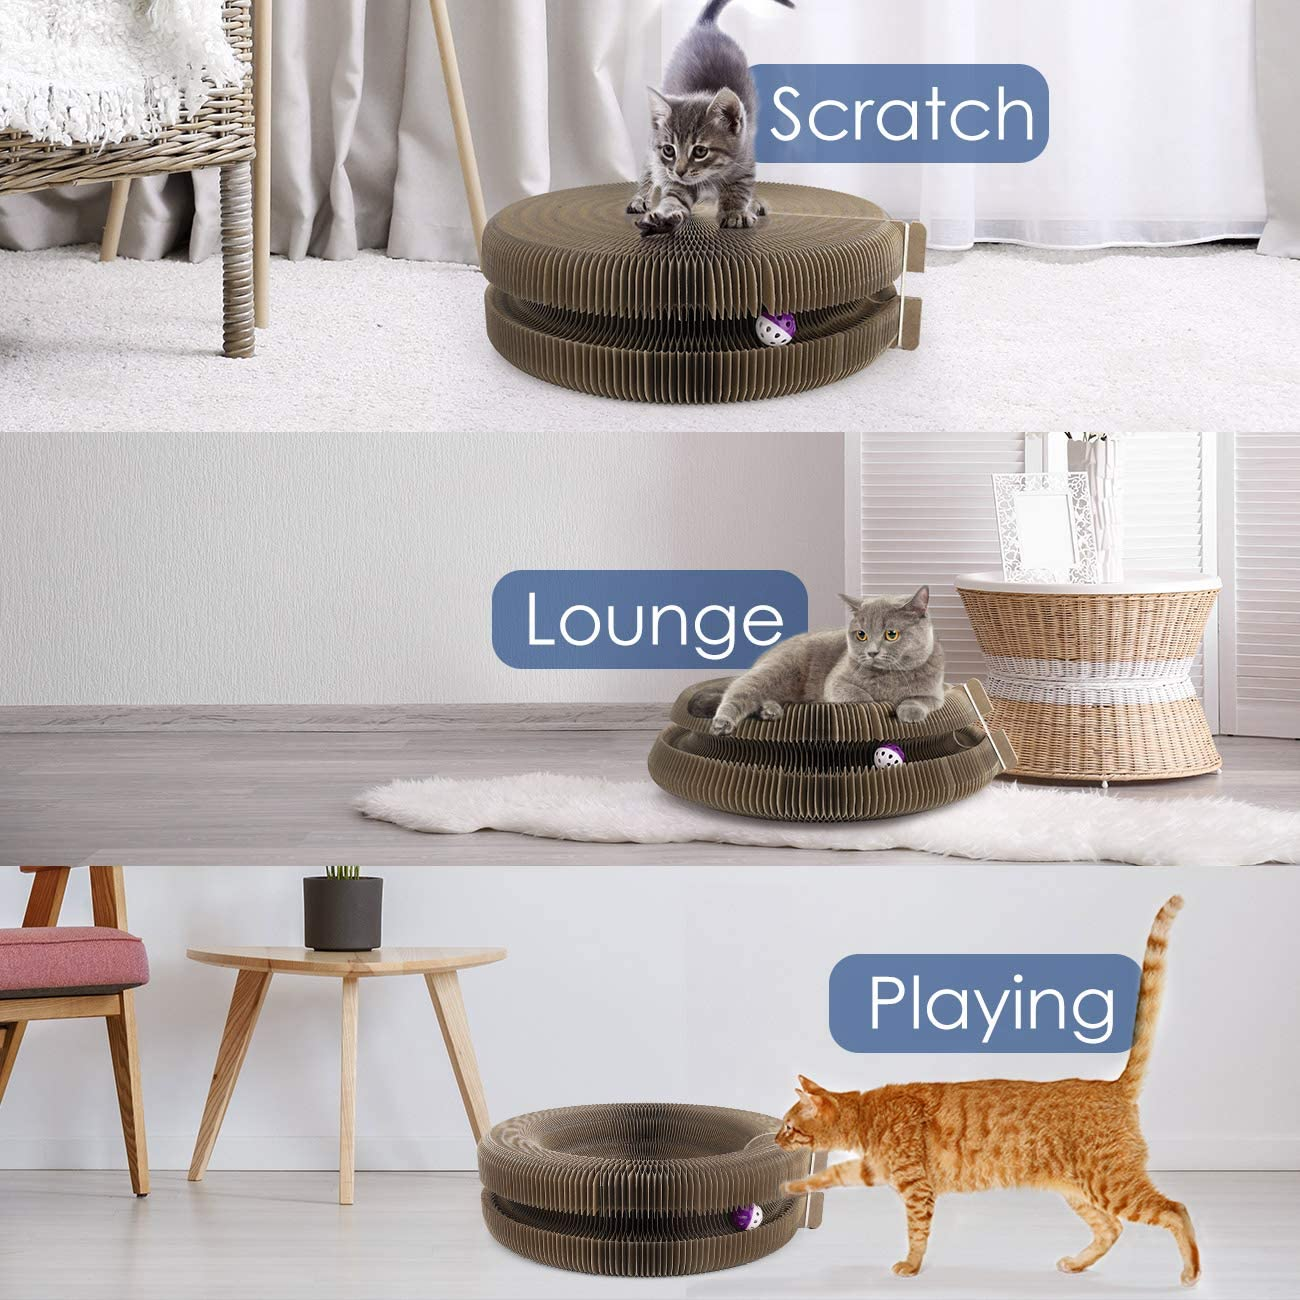 Pawaboo Cat Scratcher Lounge Bed Beige Multifunctional Collapsible High-Density Corrugated Cardboard Scratching Toy Pad Lounge Round Bed with Built-in Round Bell Balls /& Catnip for Cat Kitty Kitten